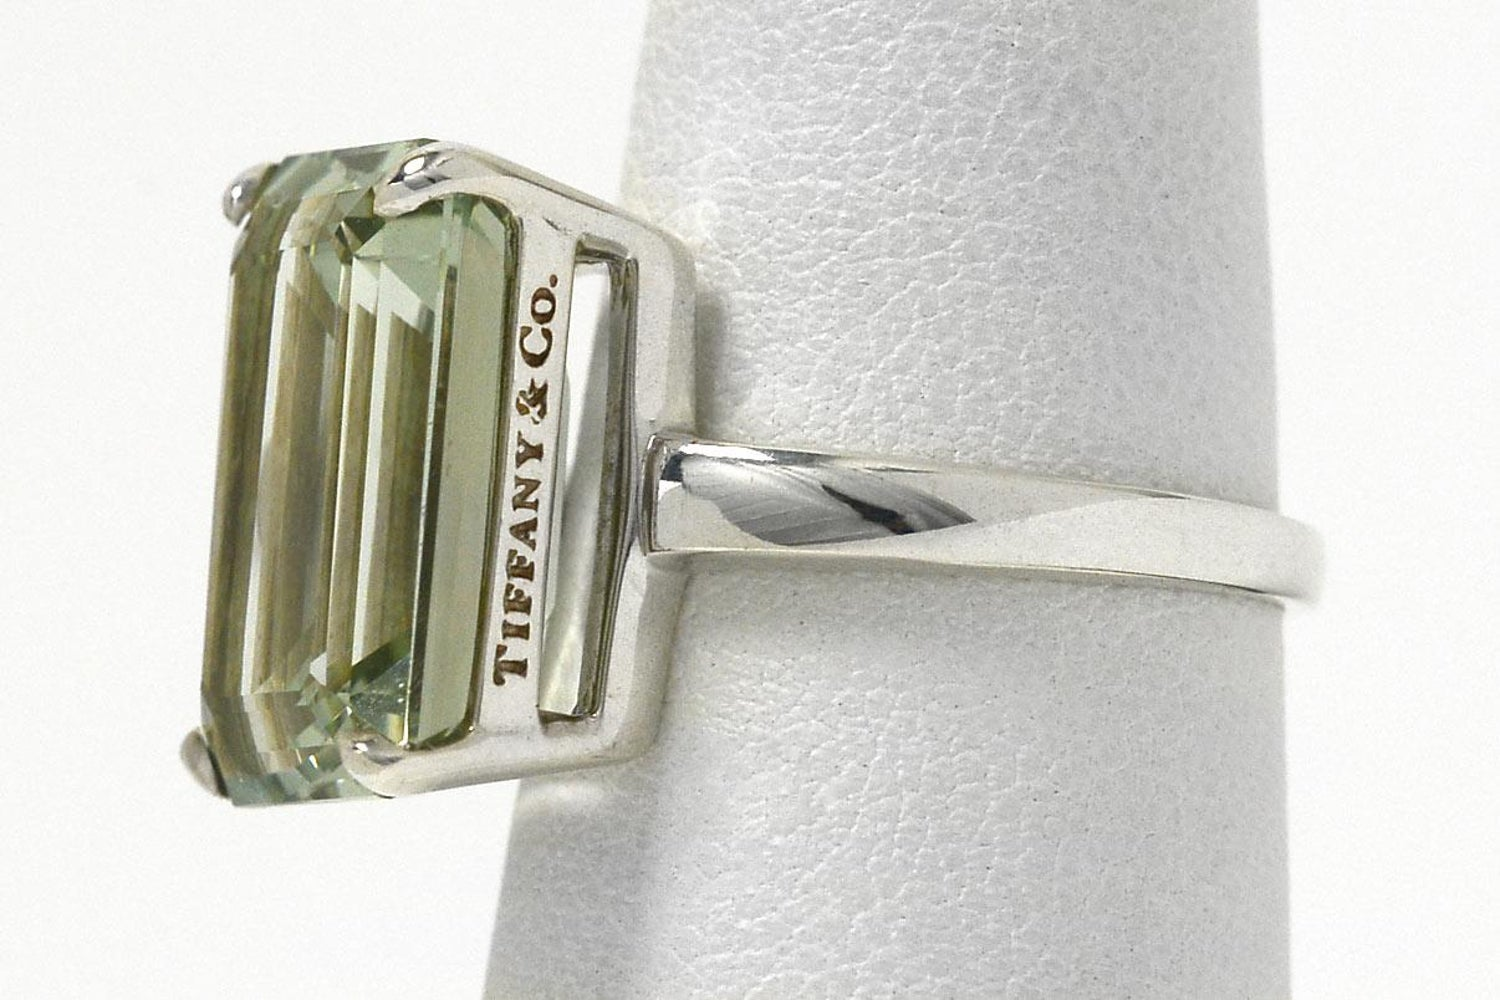 bd5fcd63d Tiffany and Co. 10 Carat Emerald Cut Prasiolite Silver Cocktail Ring at  1stdibs